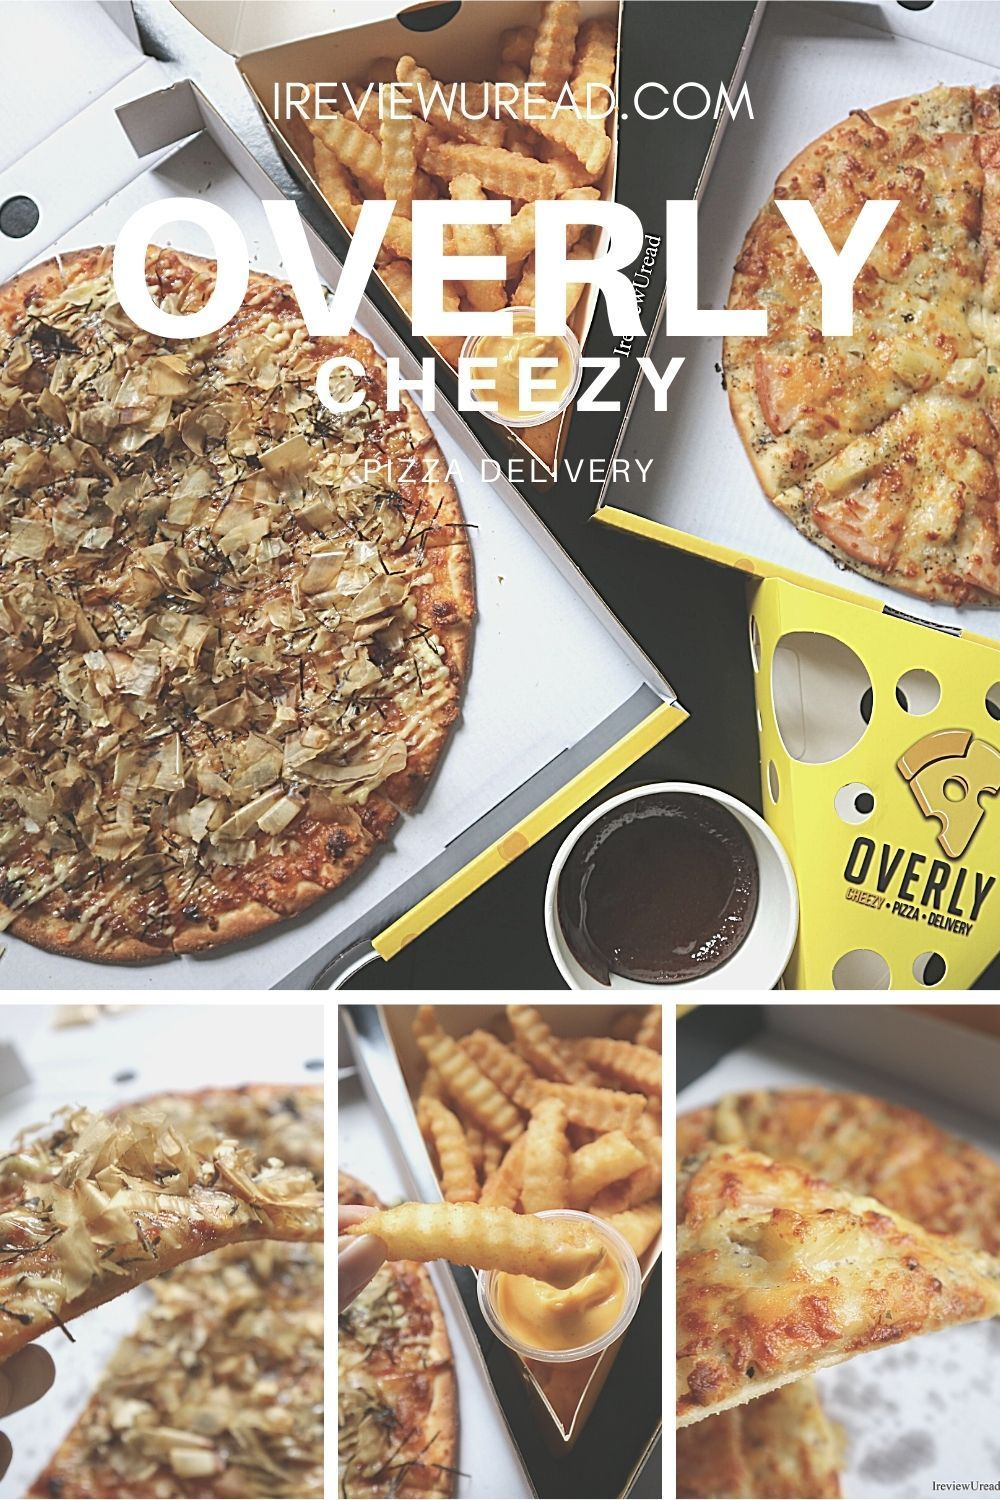 Cheesiest Pizza In Singapore Overly Cheezy Pizza Delivery Pizza Flavors Best Cheese Cheese Lover